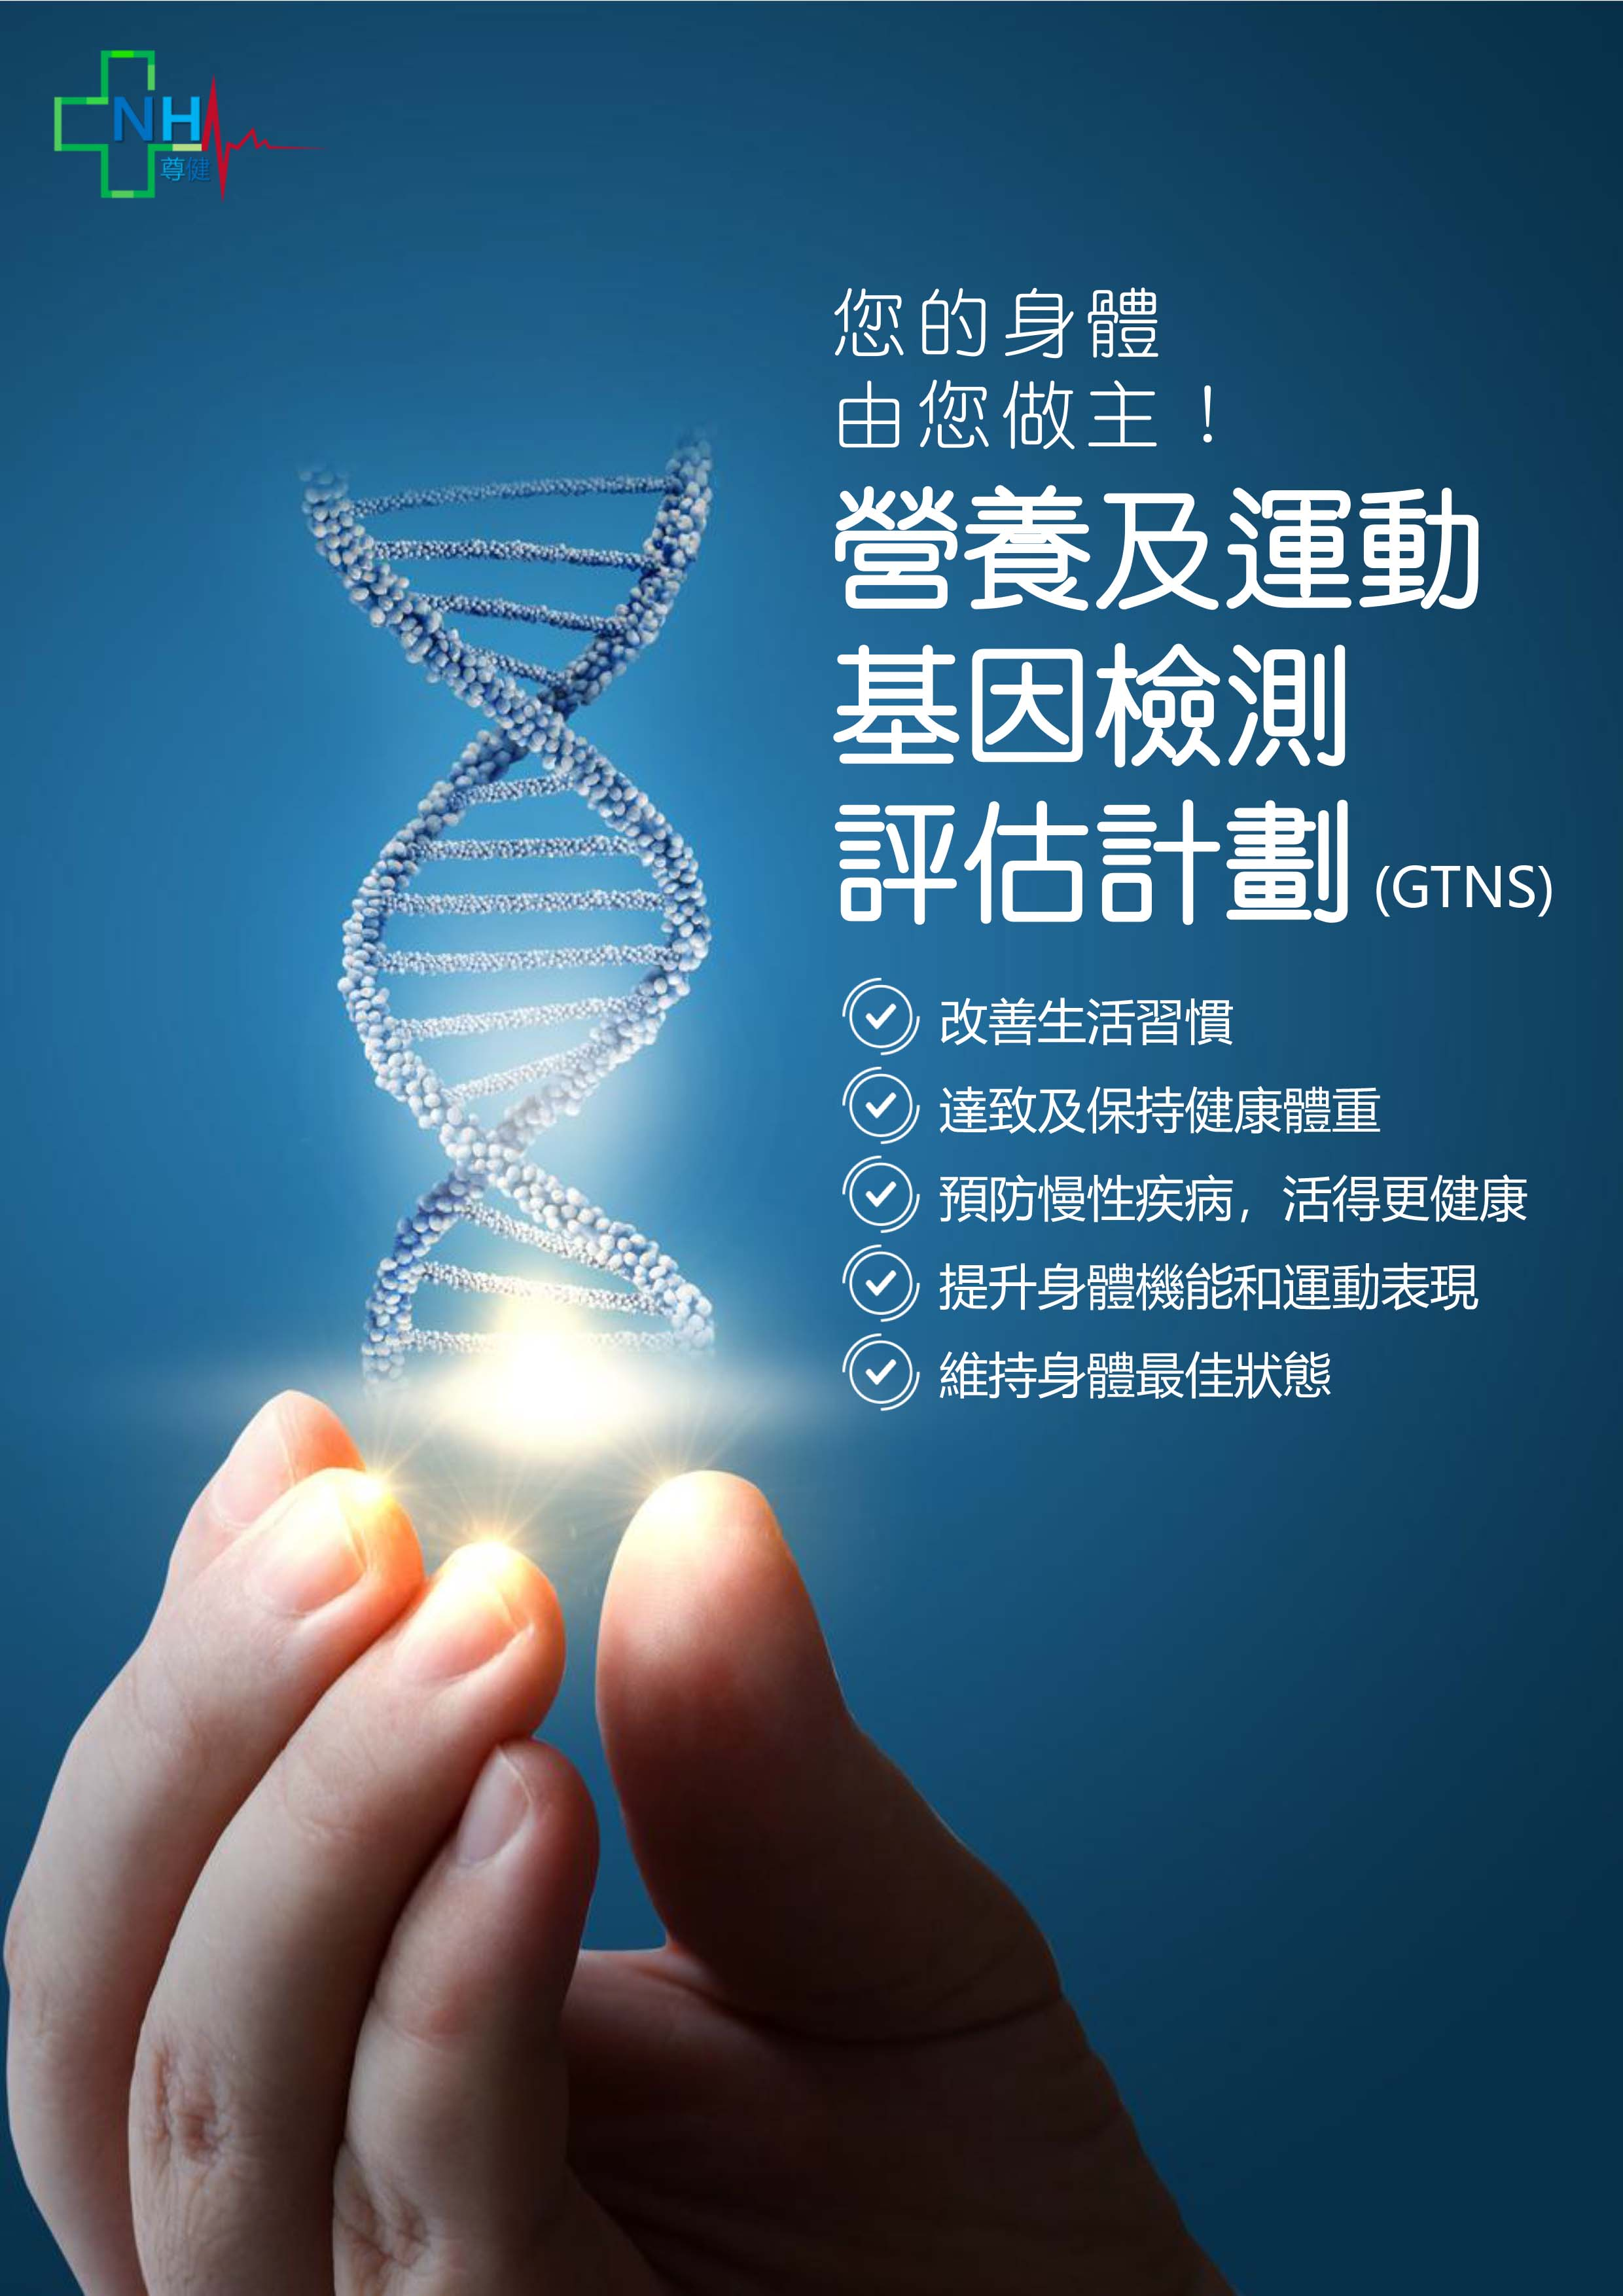 nutrition-and-sport-dna-test-1.jpg